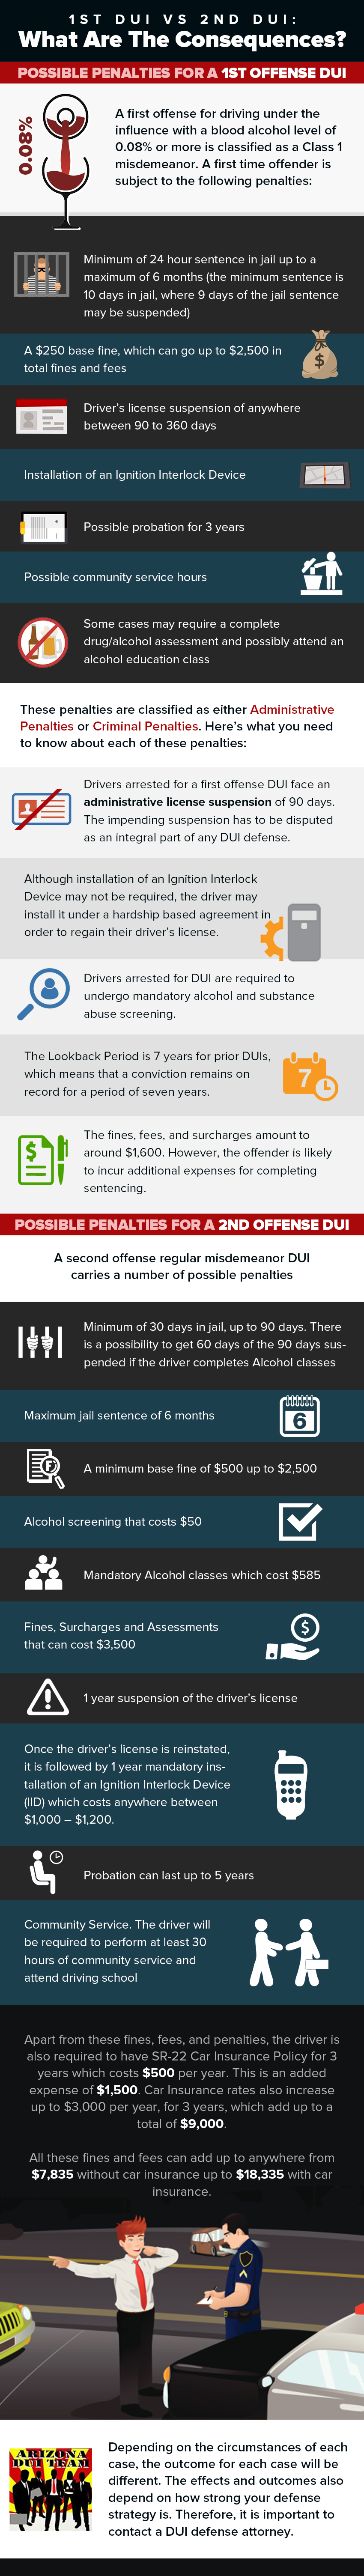 1st vs 2nd dui consequences